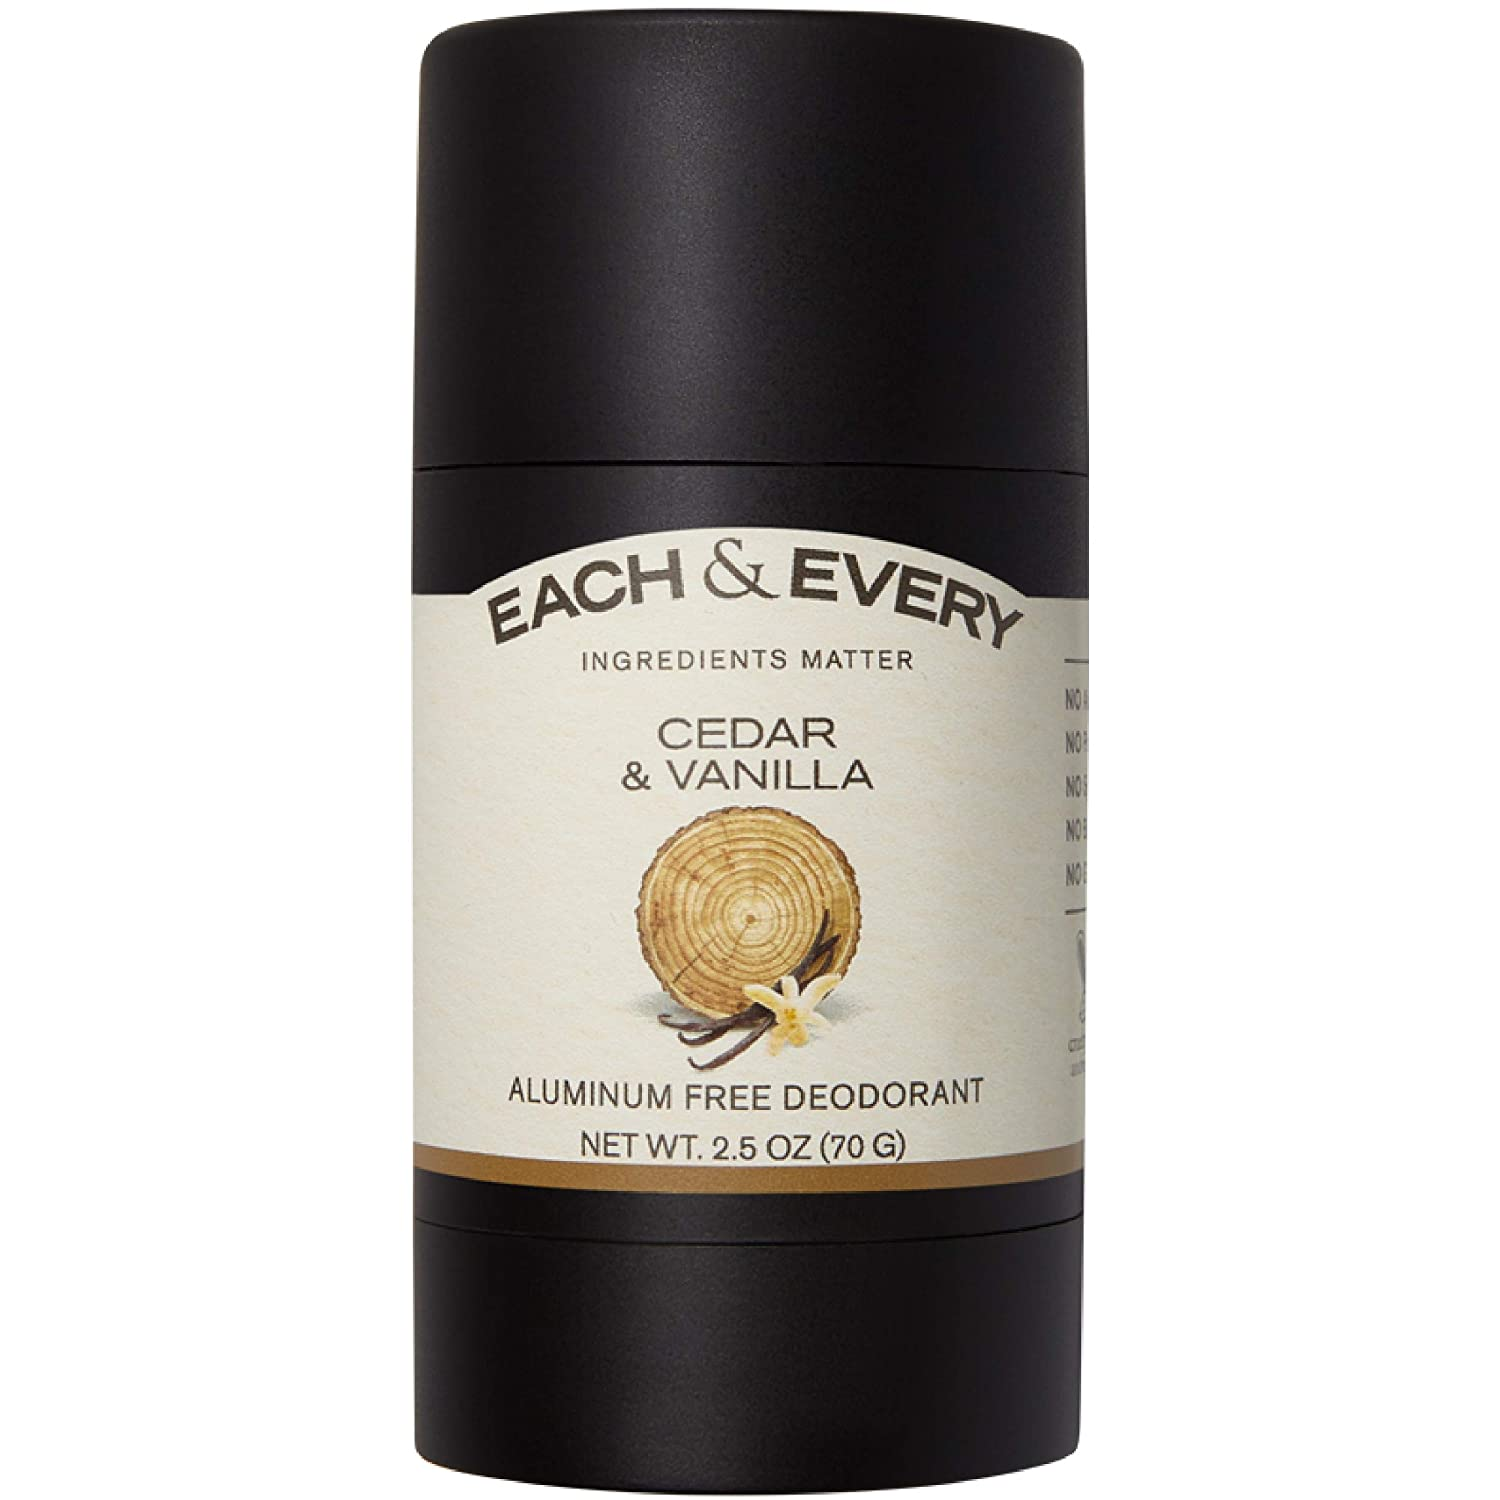 Each & Every All Natural Aluminum Free Deodorant for Men and Women, Cruelty Free Vegan Deodorant with Essential Oils, Non-Toxic, Paraben Free, Cedar & Vanilla, 2.5 Oz.